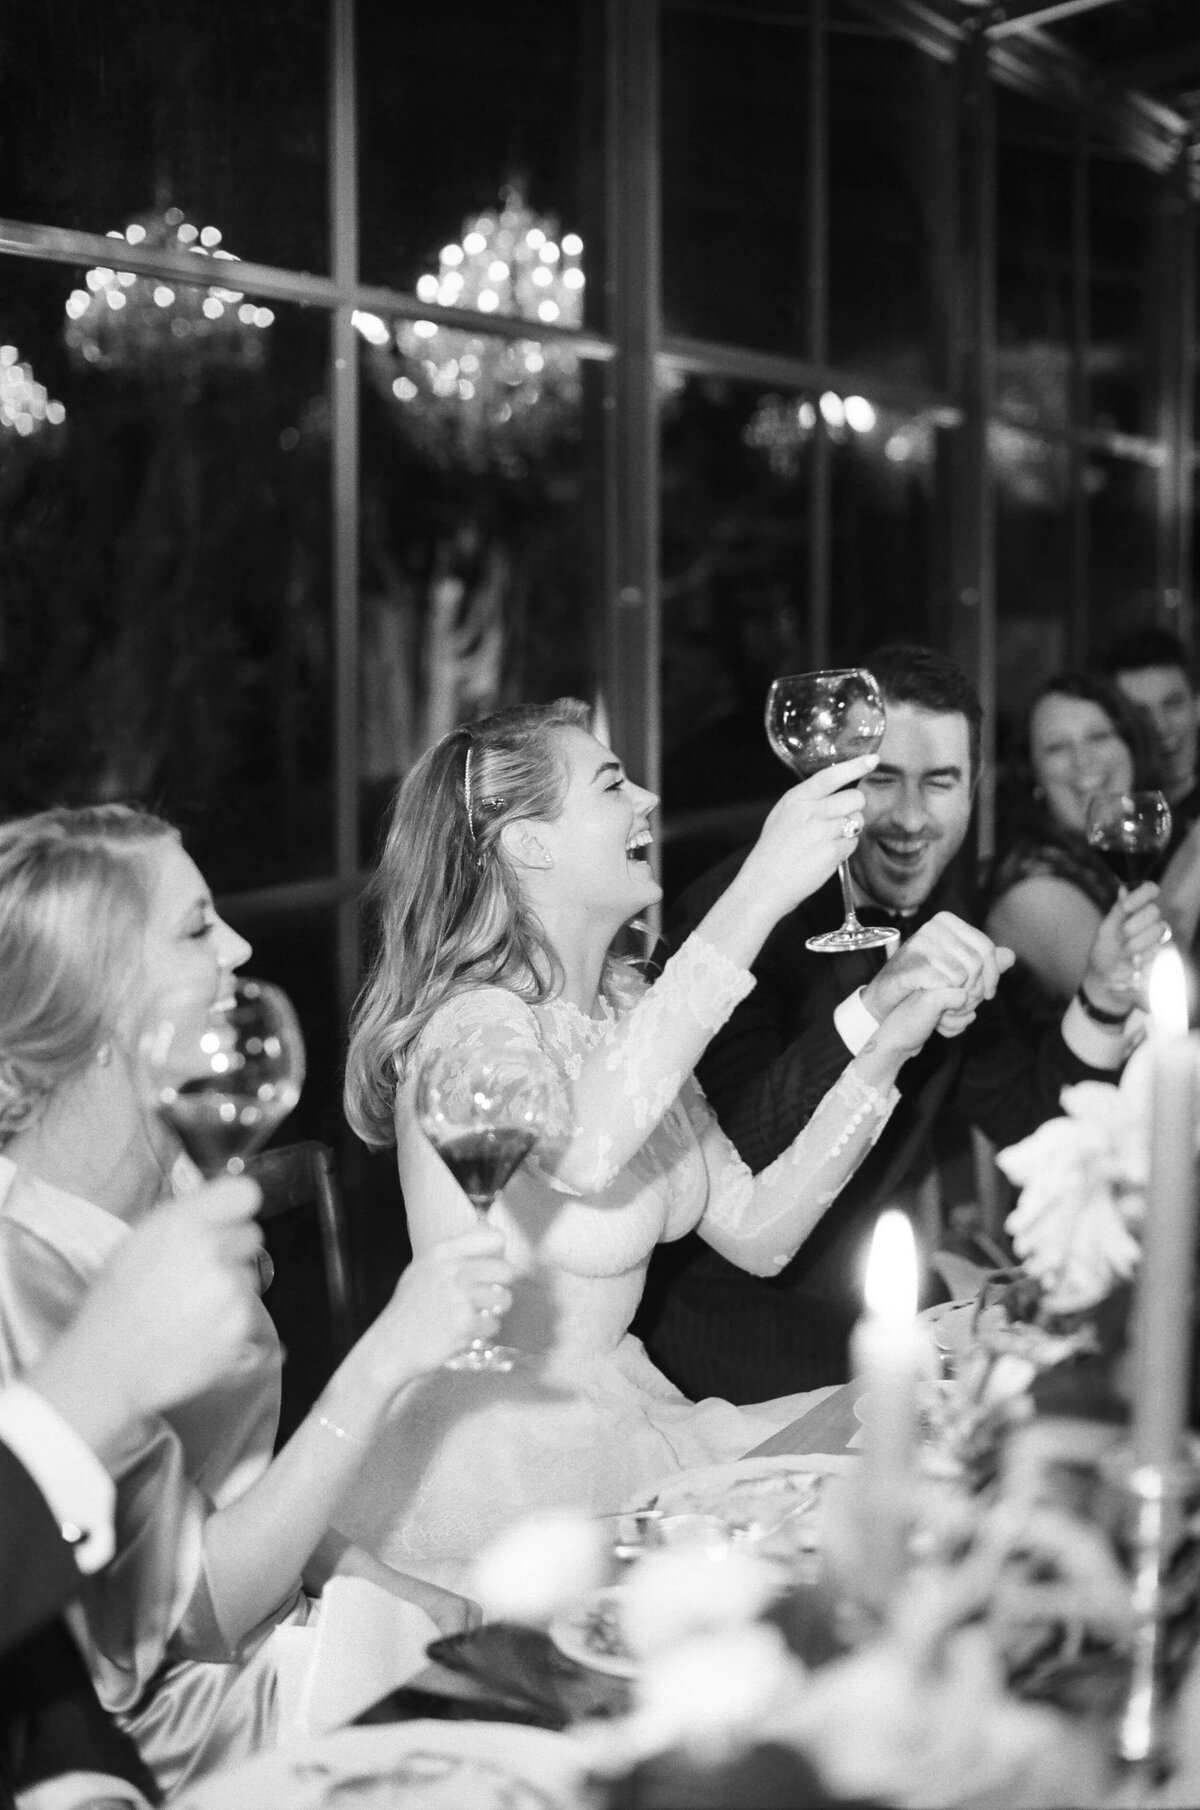 37-KTMerry-weddings-Kate-Upton-Justin-Verlander-toast